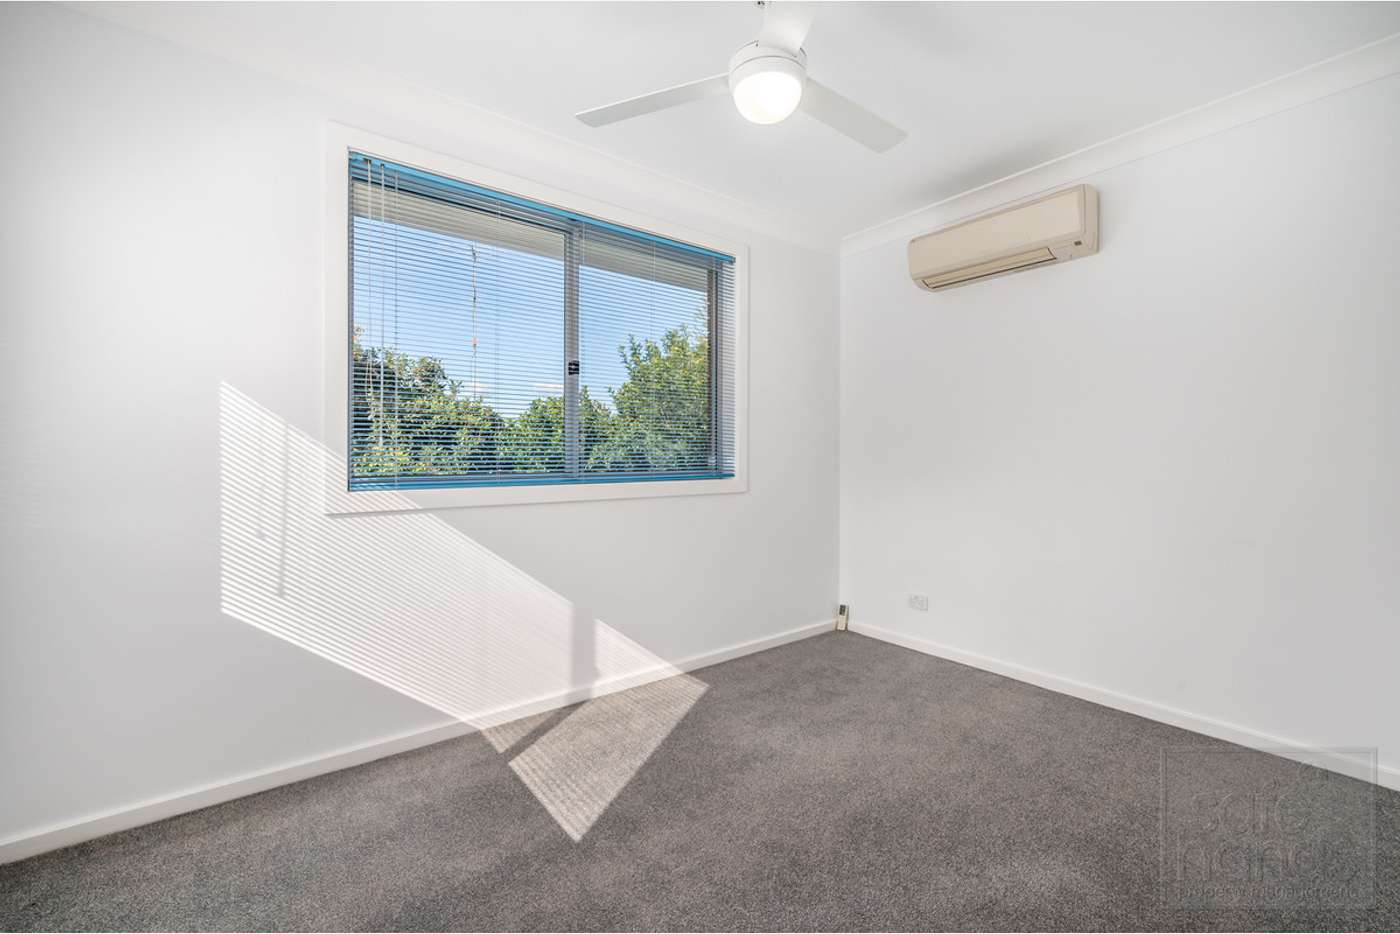 Seventh view of Homely house listing, 10 Boldon Close, Charlestown NSW 2290